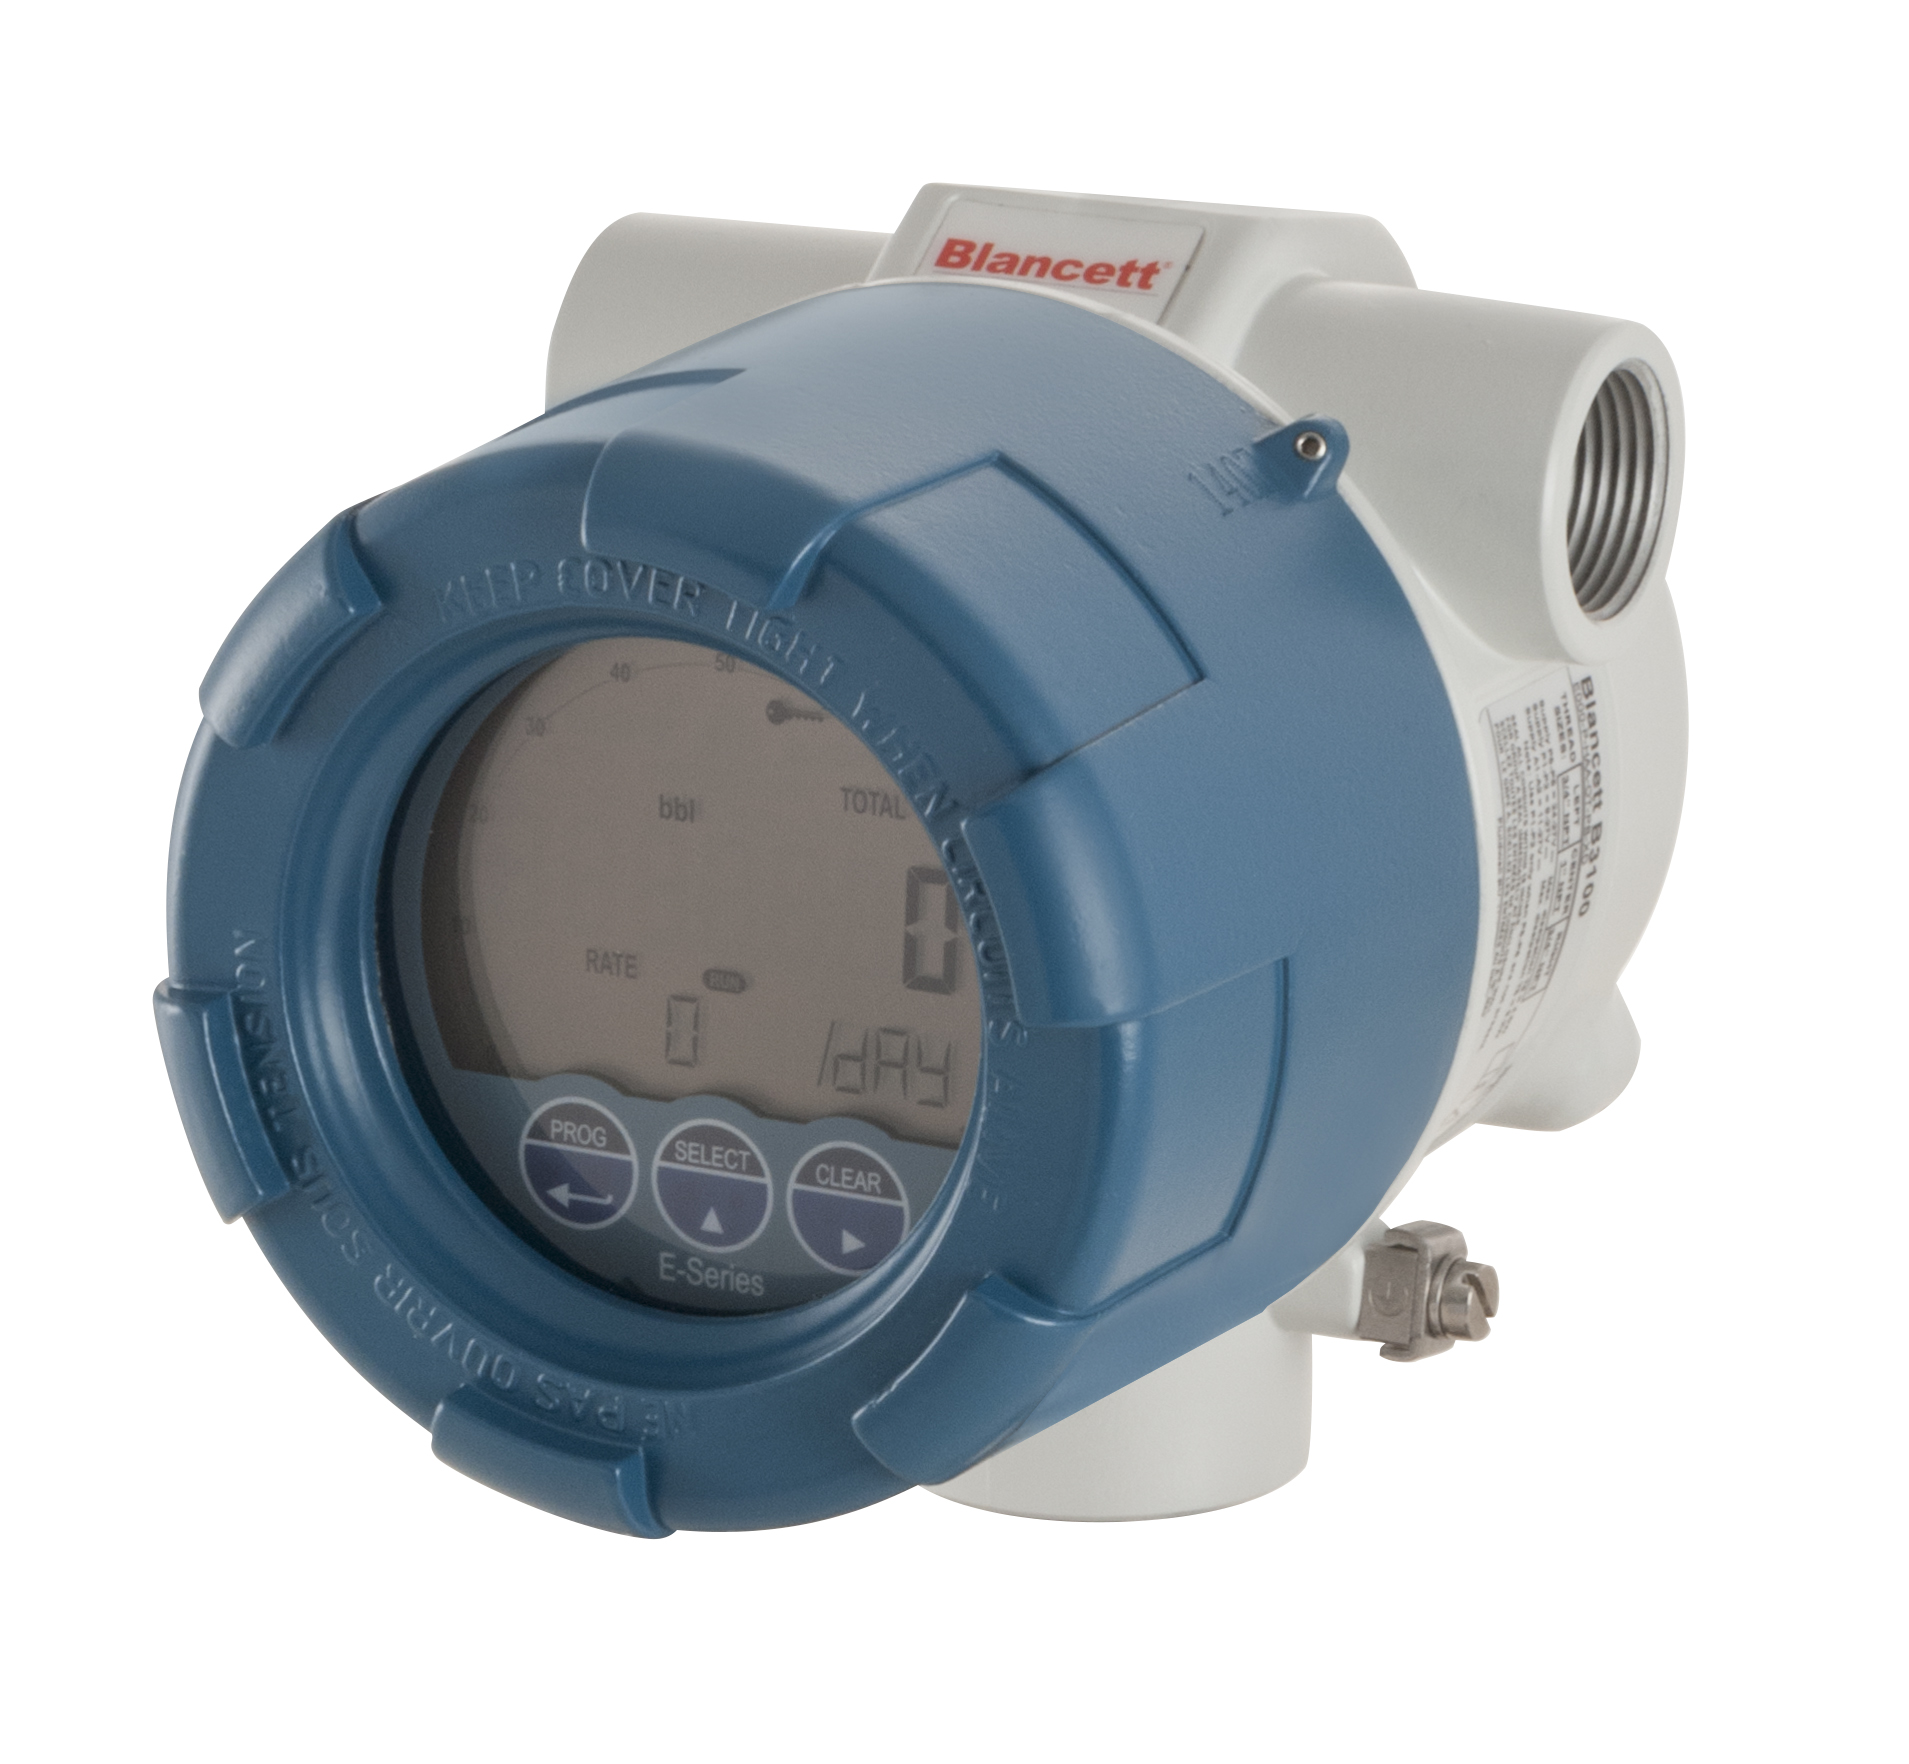 B3100 Series Flow Monitor